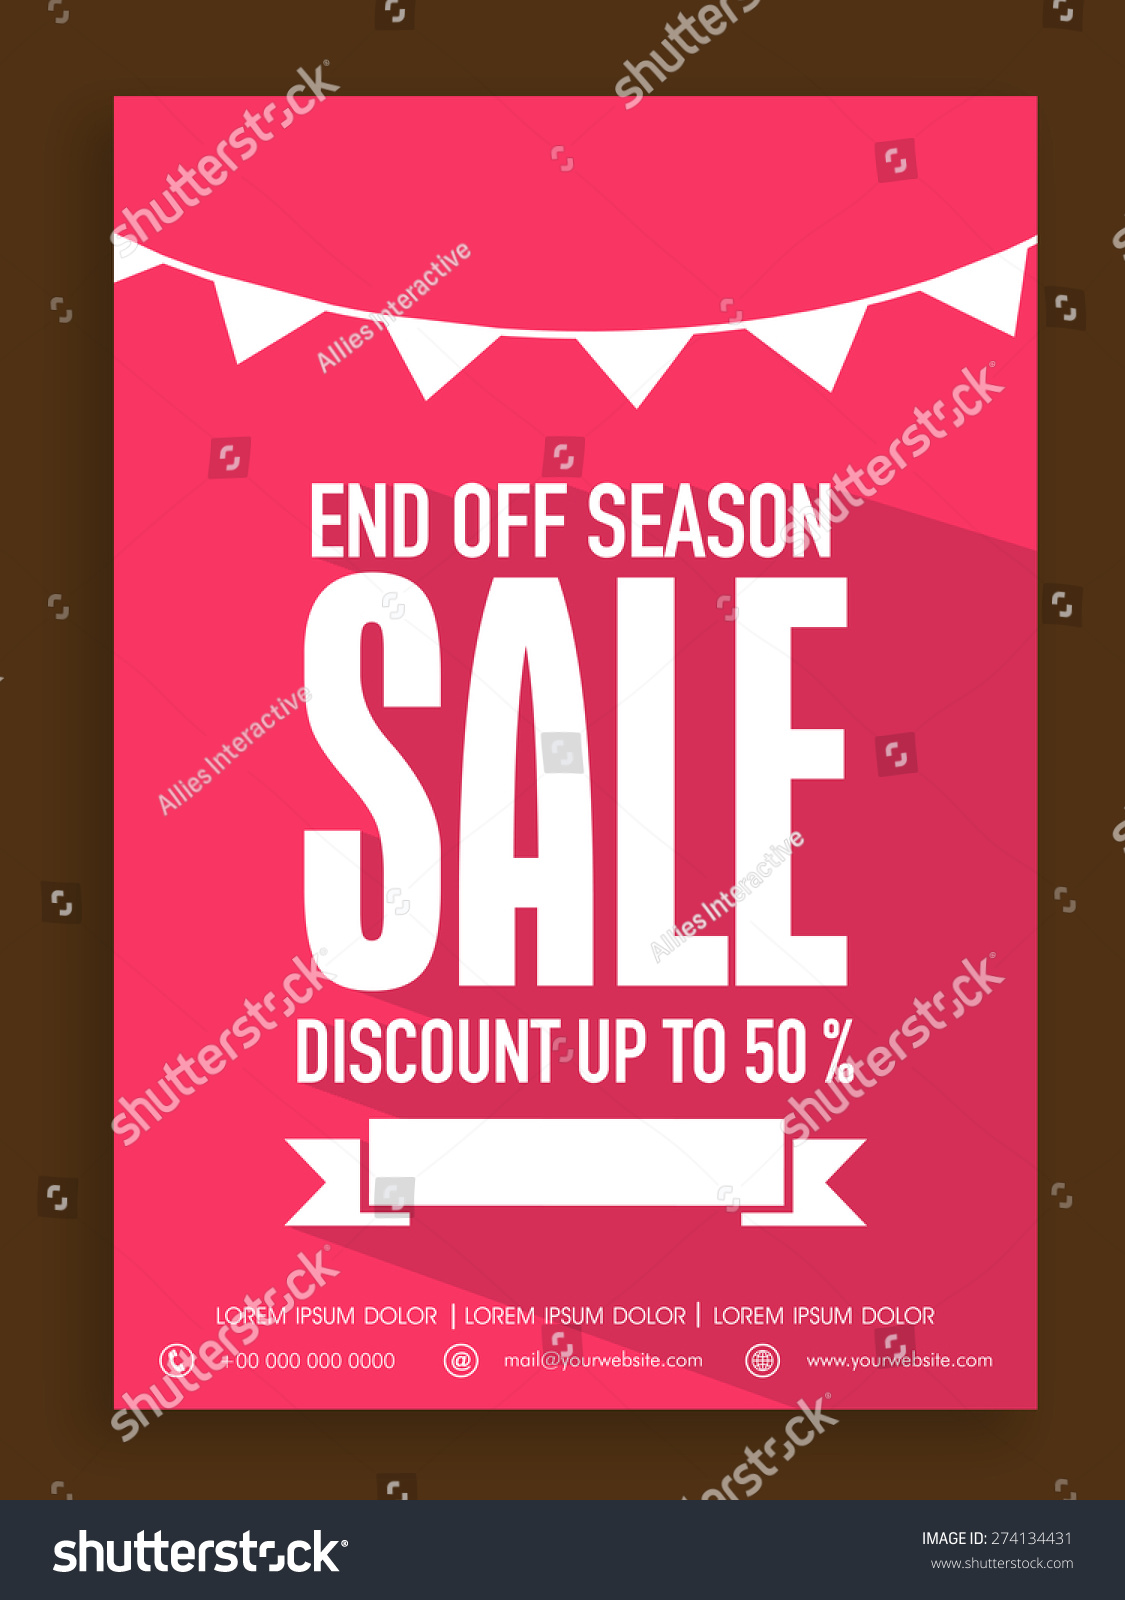 beautiful poster banner flyer design end stock vector  beautiful poster banner or flyer design for end of season discount offer